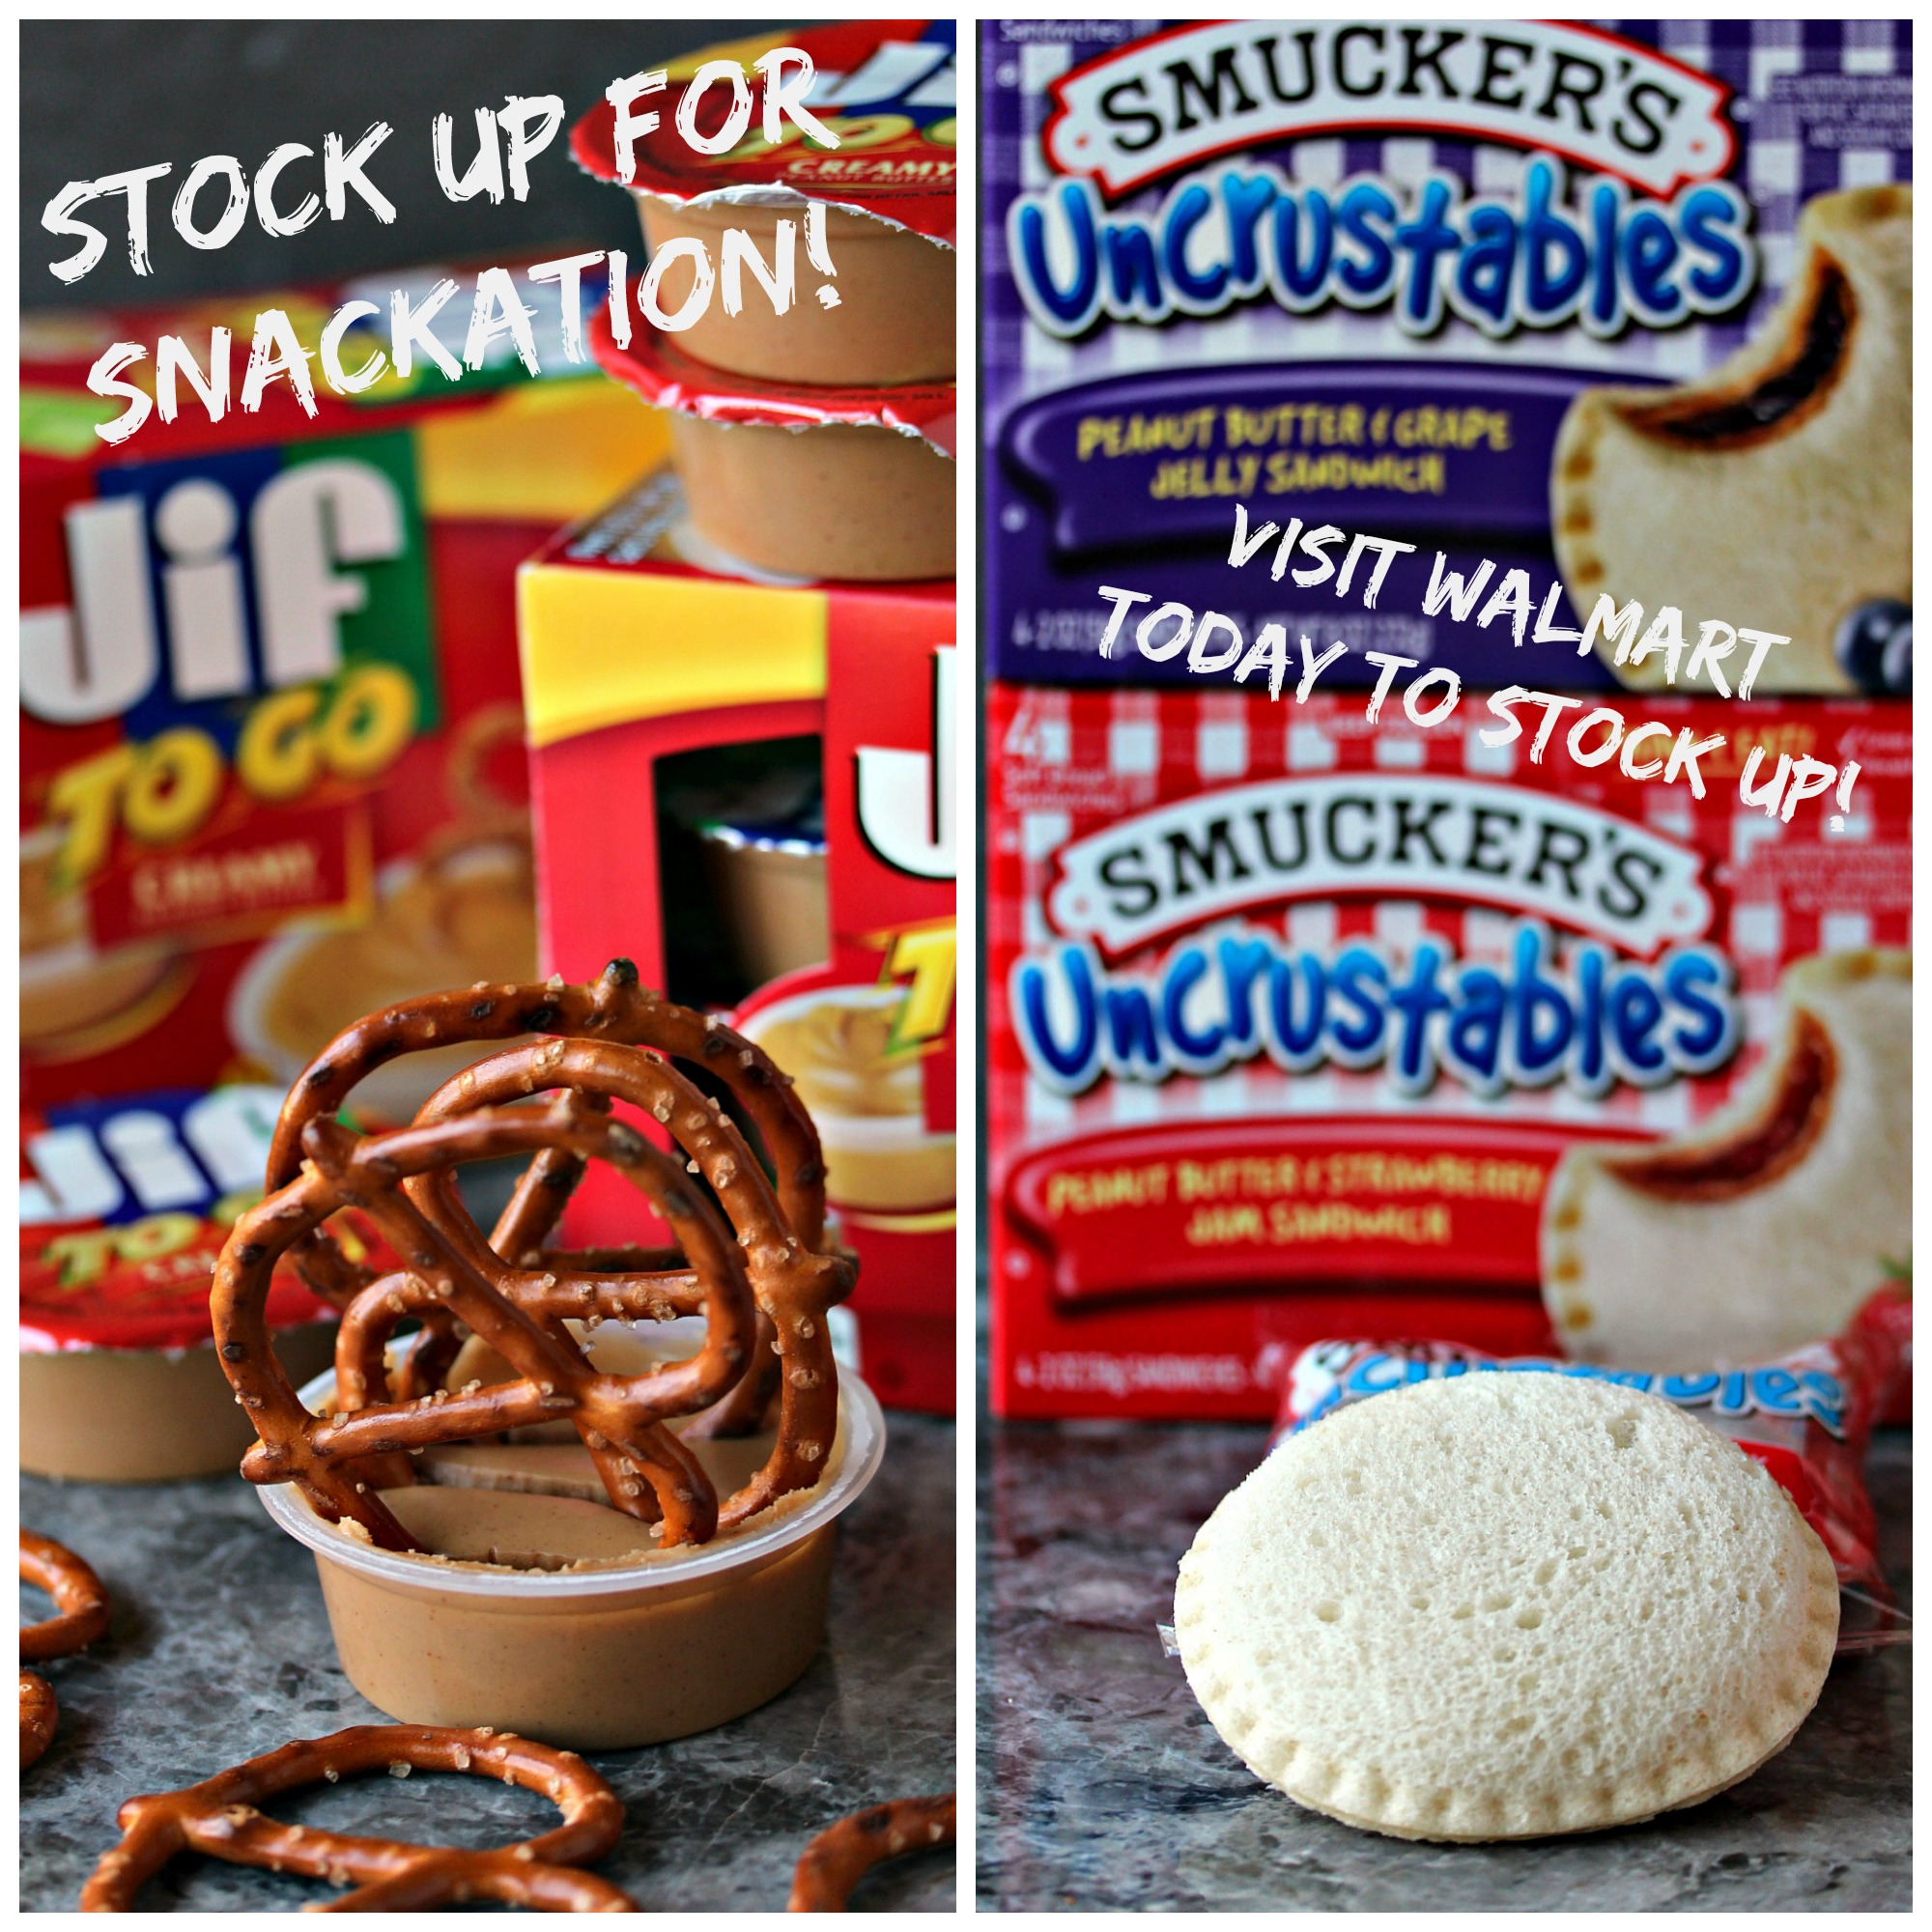 Celebrate Snackation during March Break this year. I've partnered with The J.M. Smucker Company and Walmart to bring you fun ideas and snack suggestions for March Break. Otherwise known as #Snackation. Swing by cravingsofalunatic.com for snack ideas. (@CravingsLunatic)